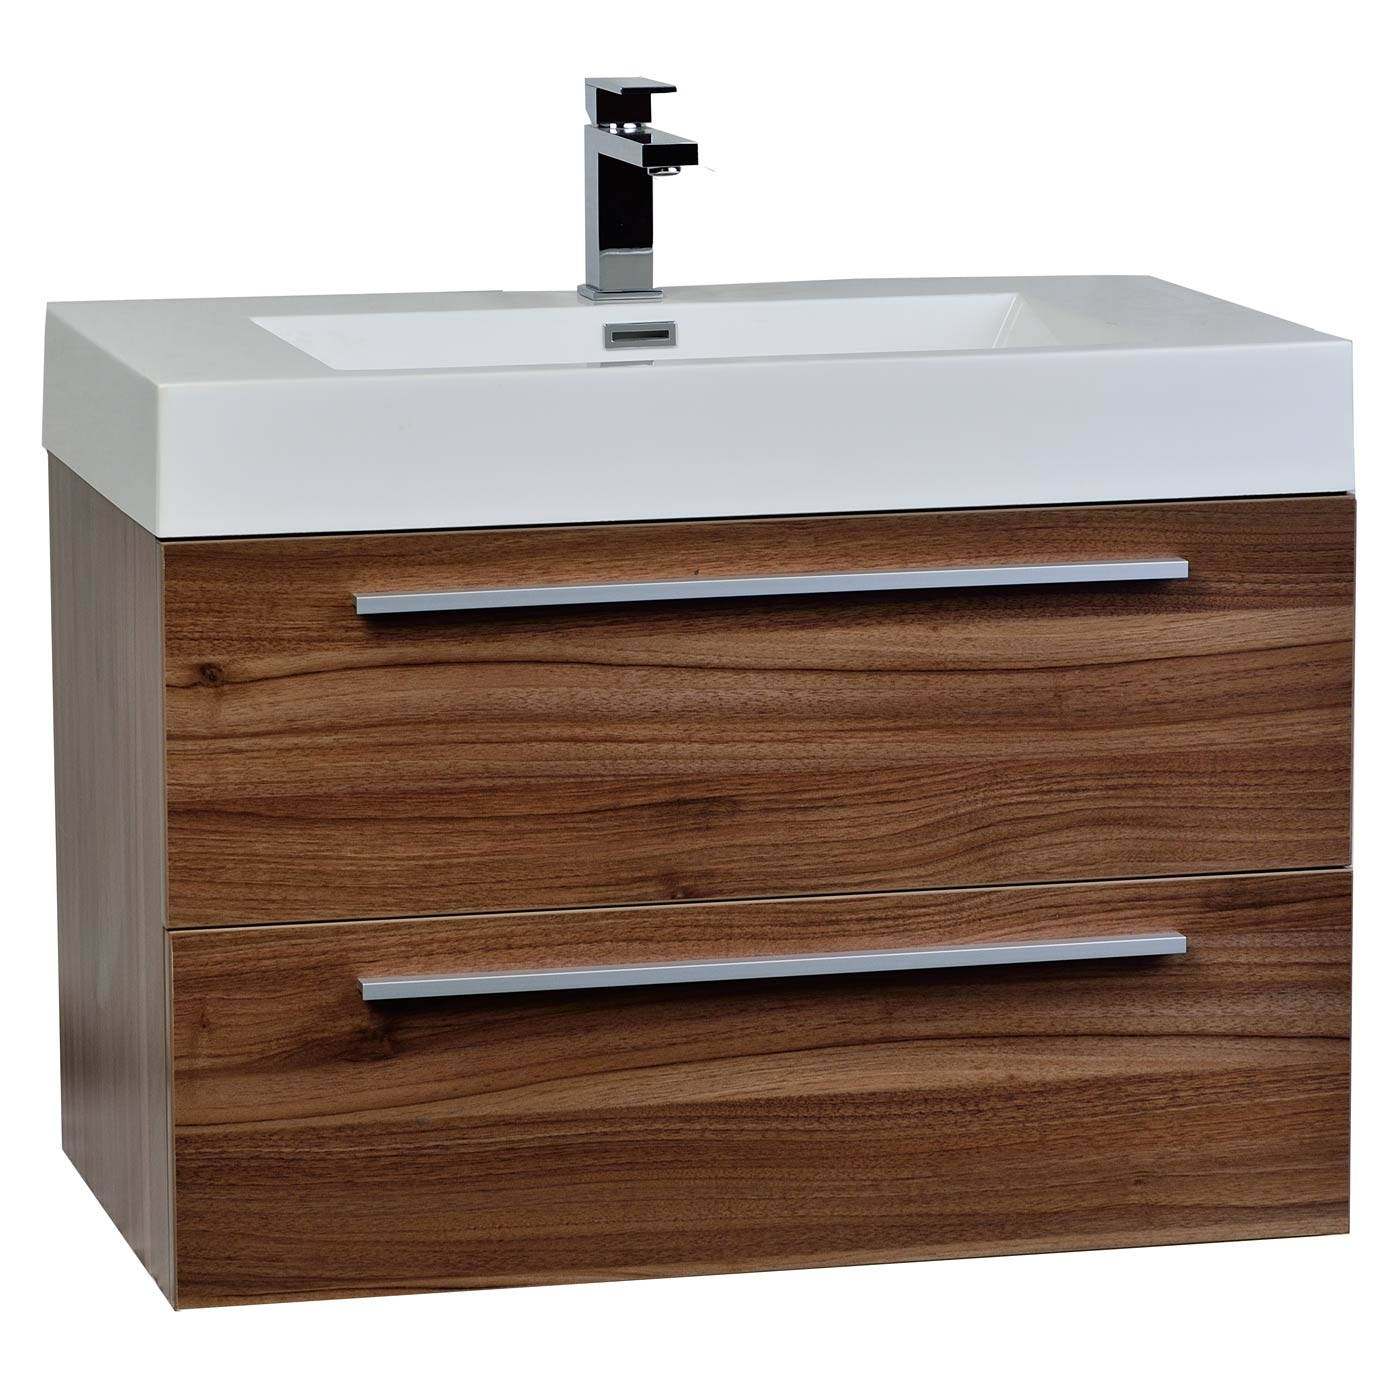 Walnut bathroom vanity